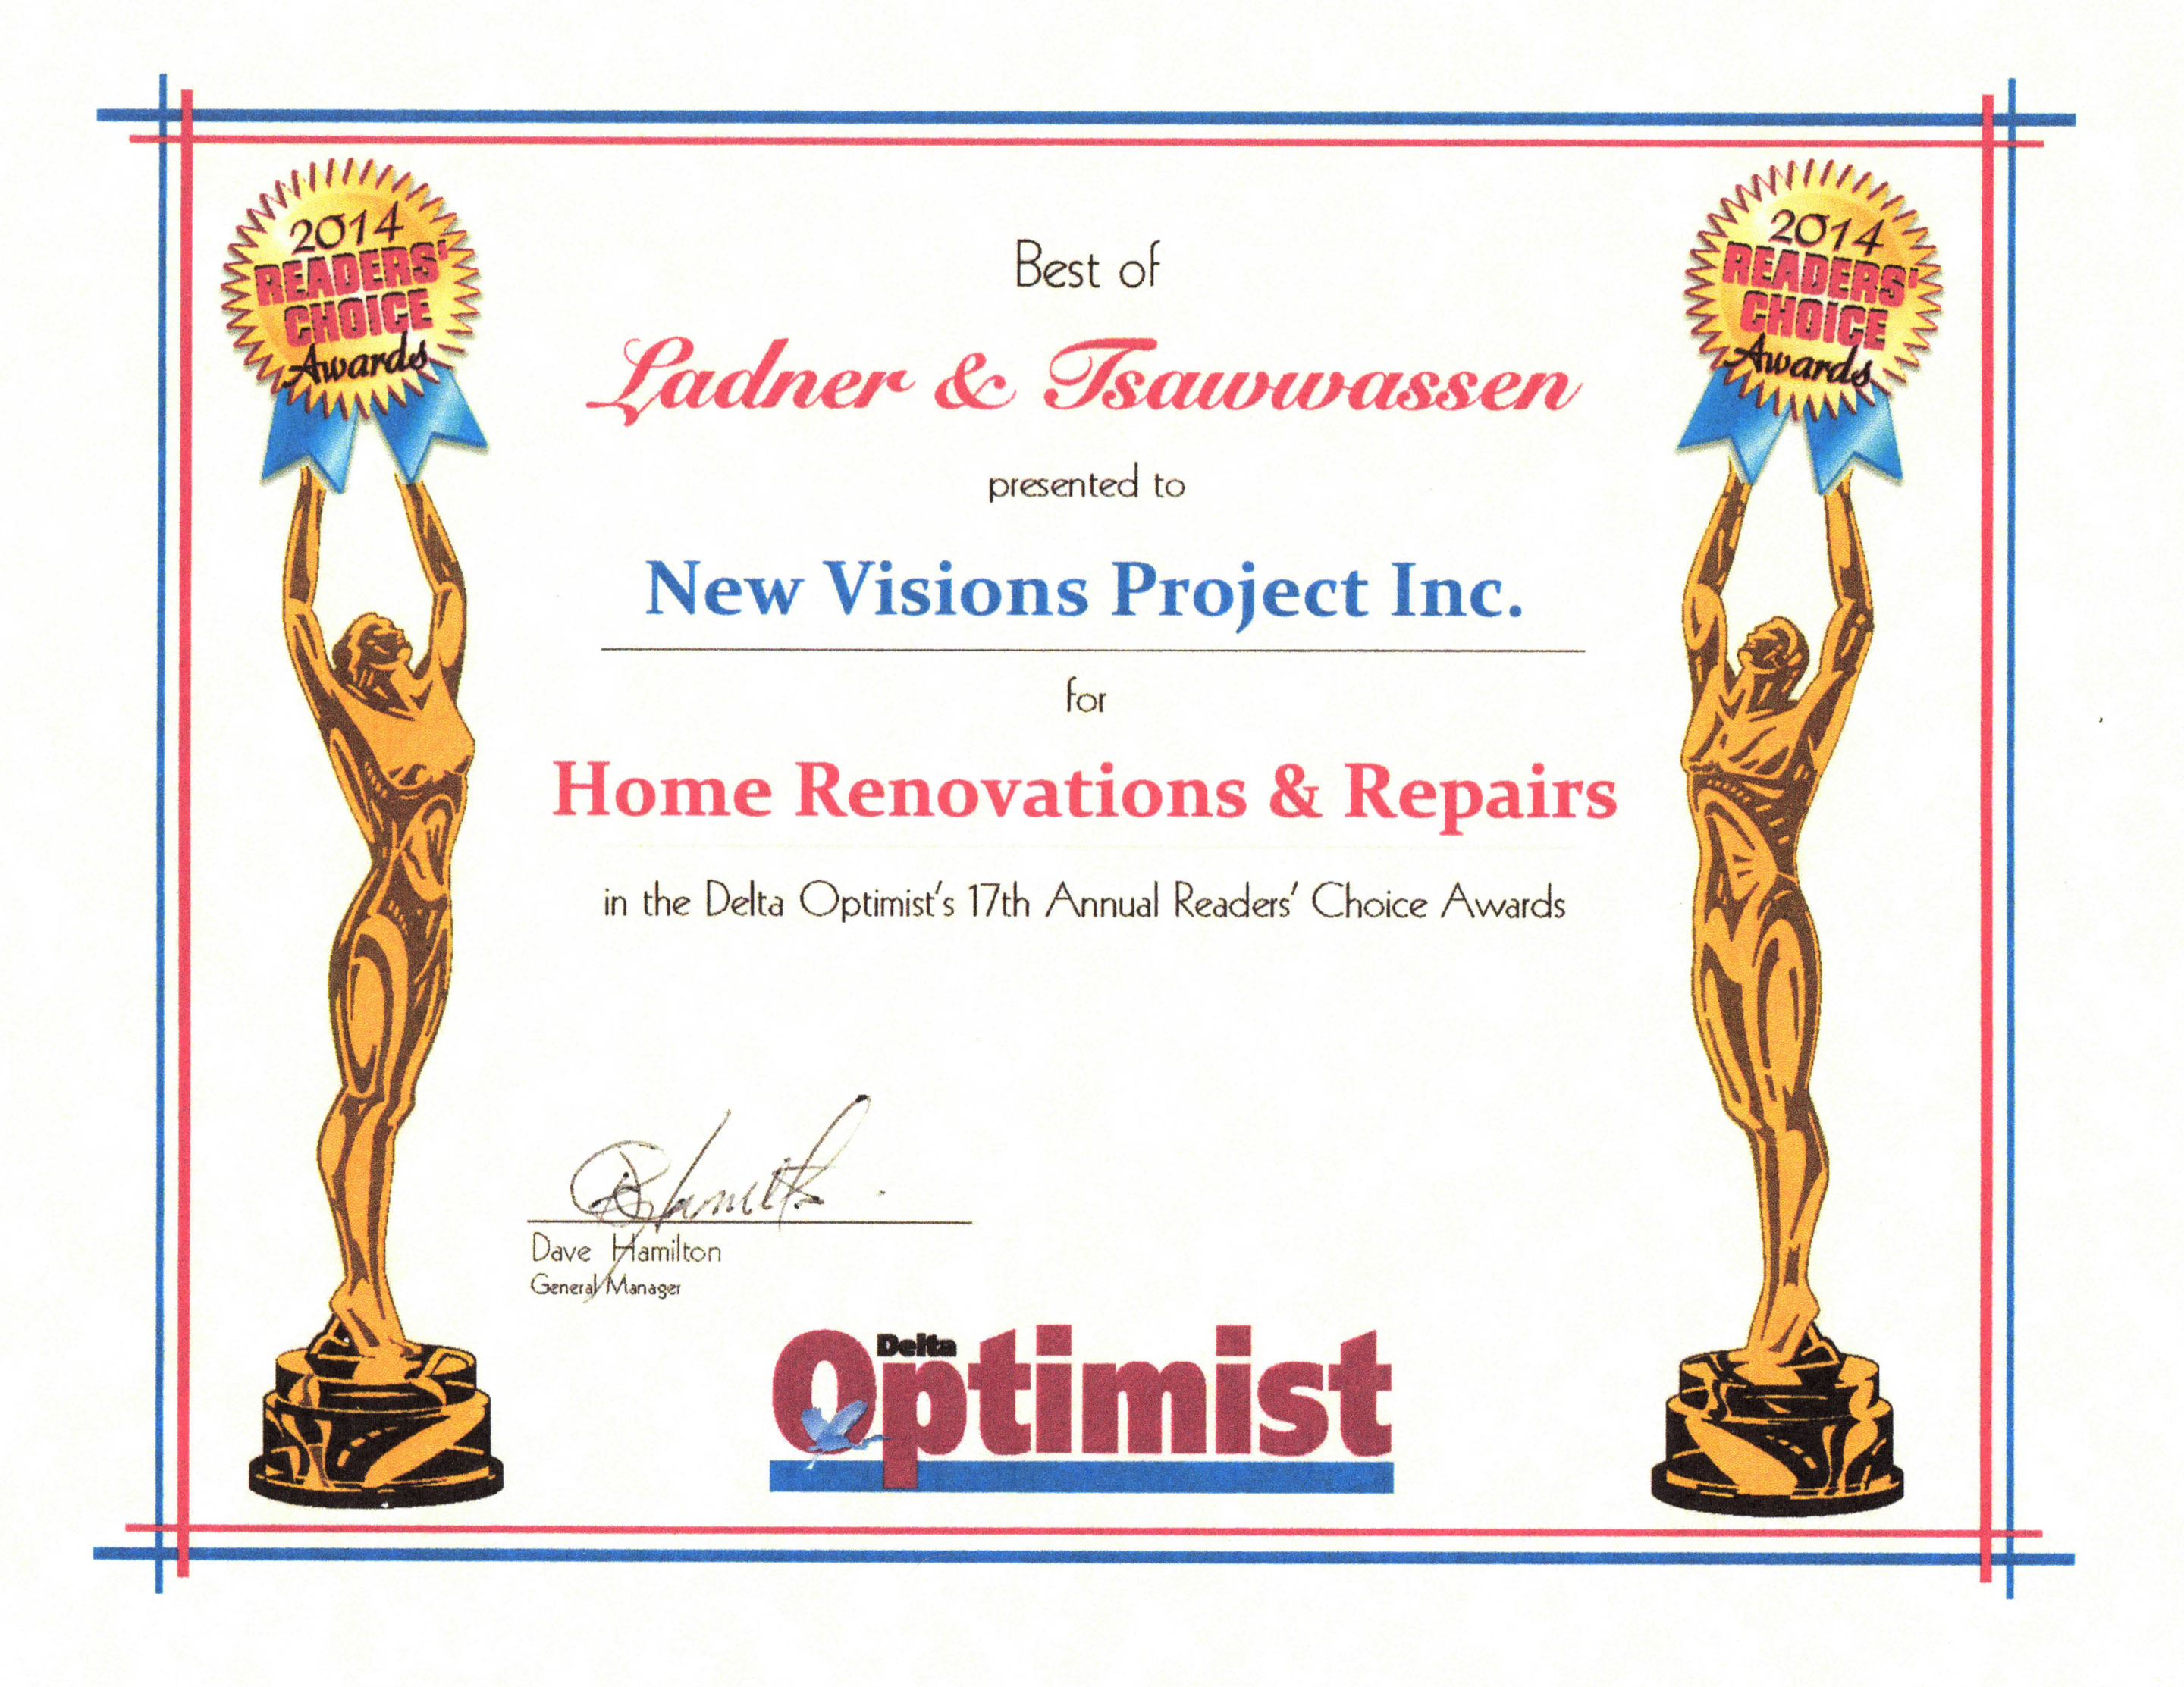 2014 Delta Optimist Readers Choice Awards – Best Home Renovations and Repair